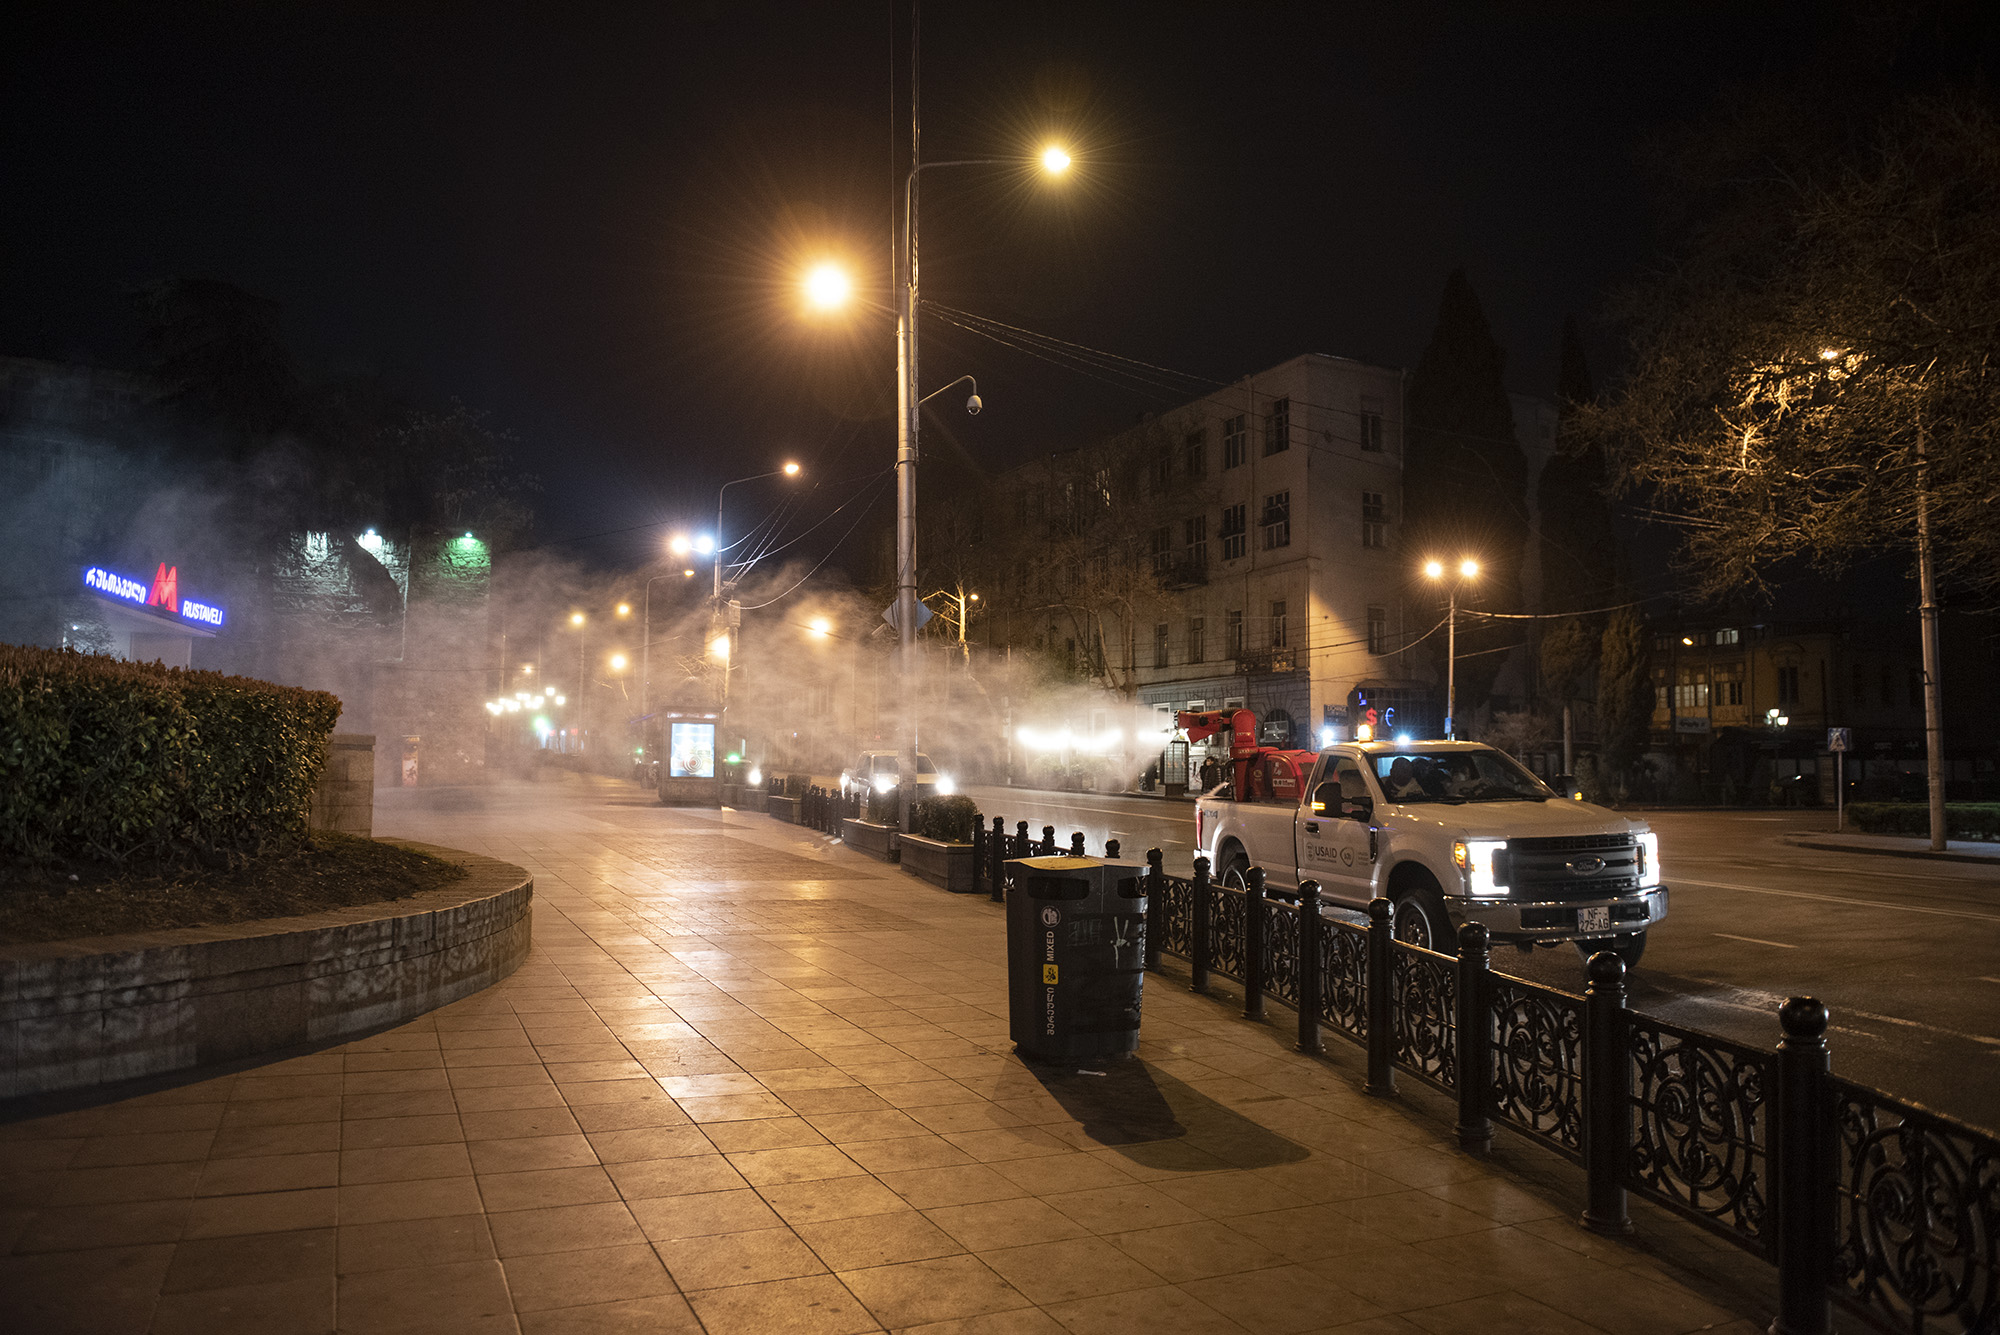 Tbilisi City Hall started disinfecting streets on 25 March. Photo: Mariam Nikuradze/OC Media.